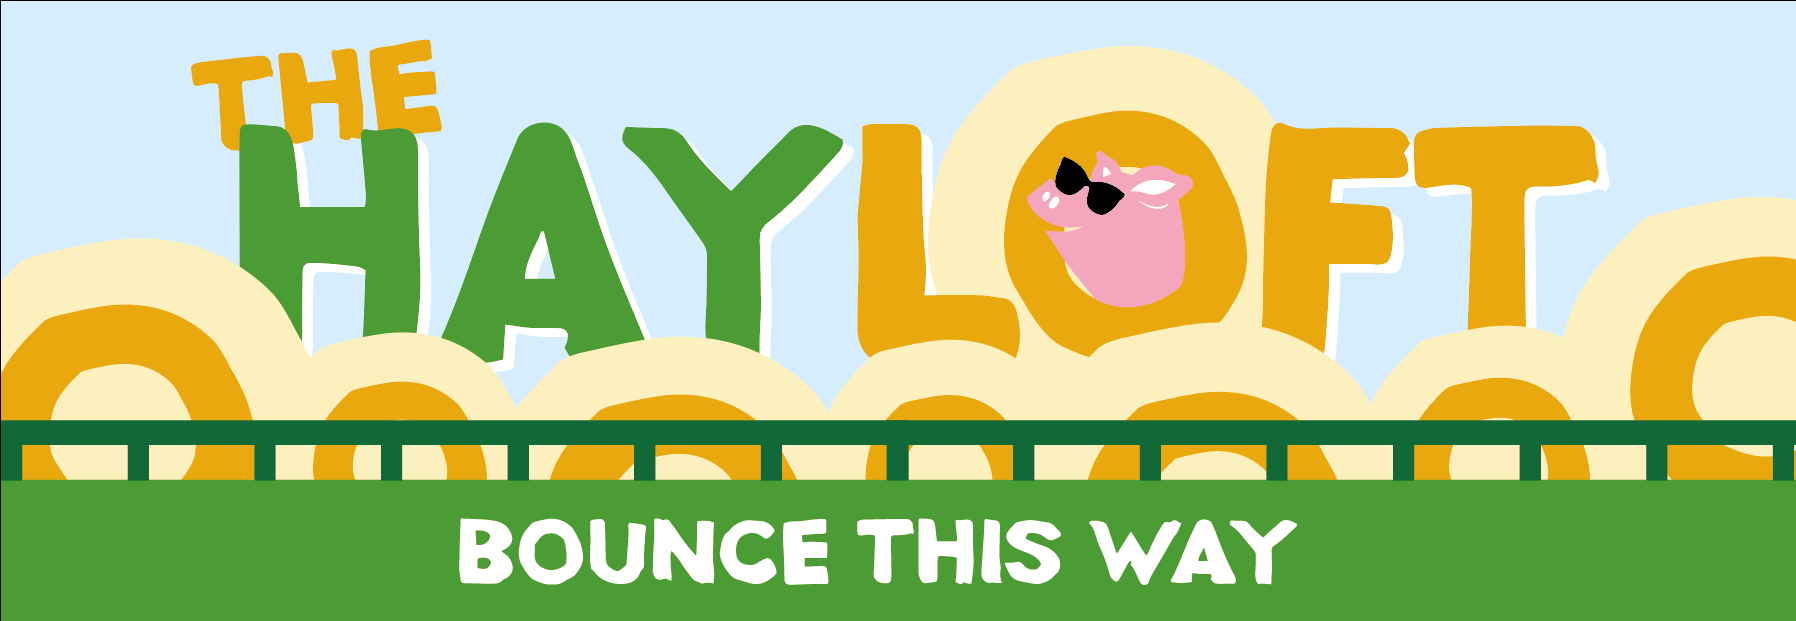 The Hayloft Signage.png